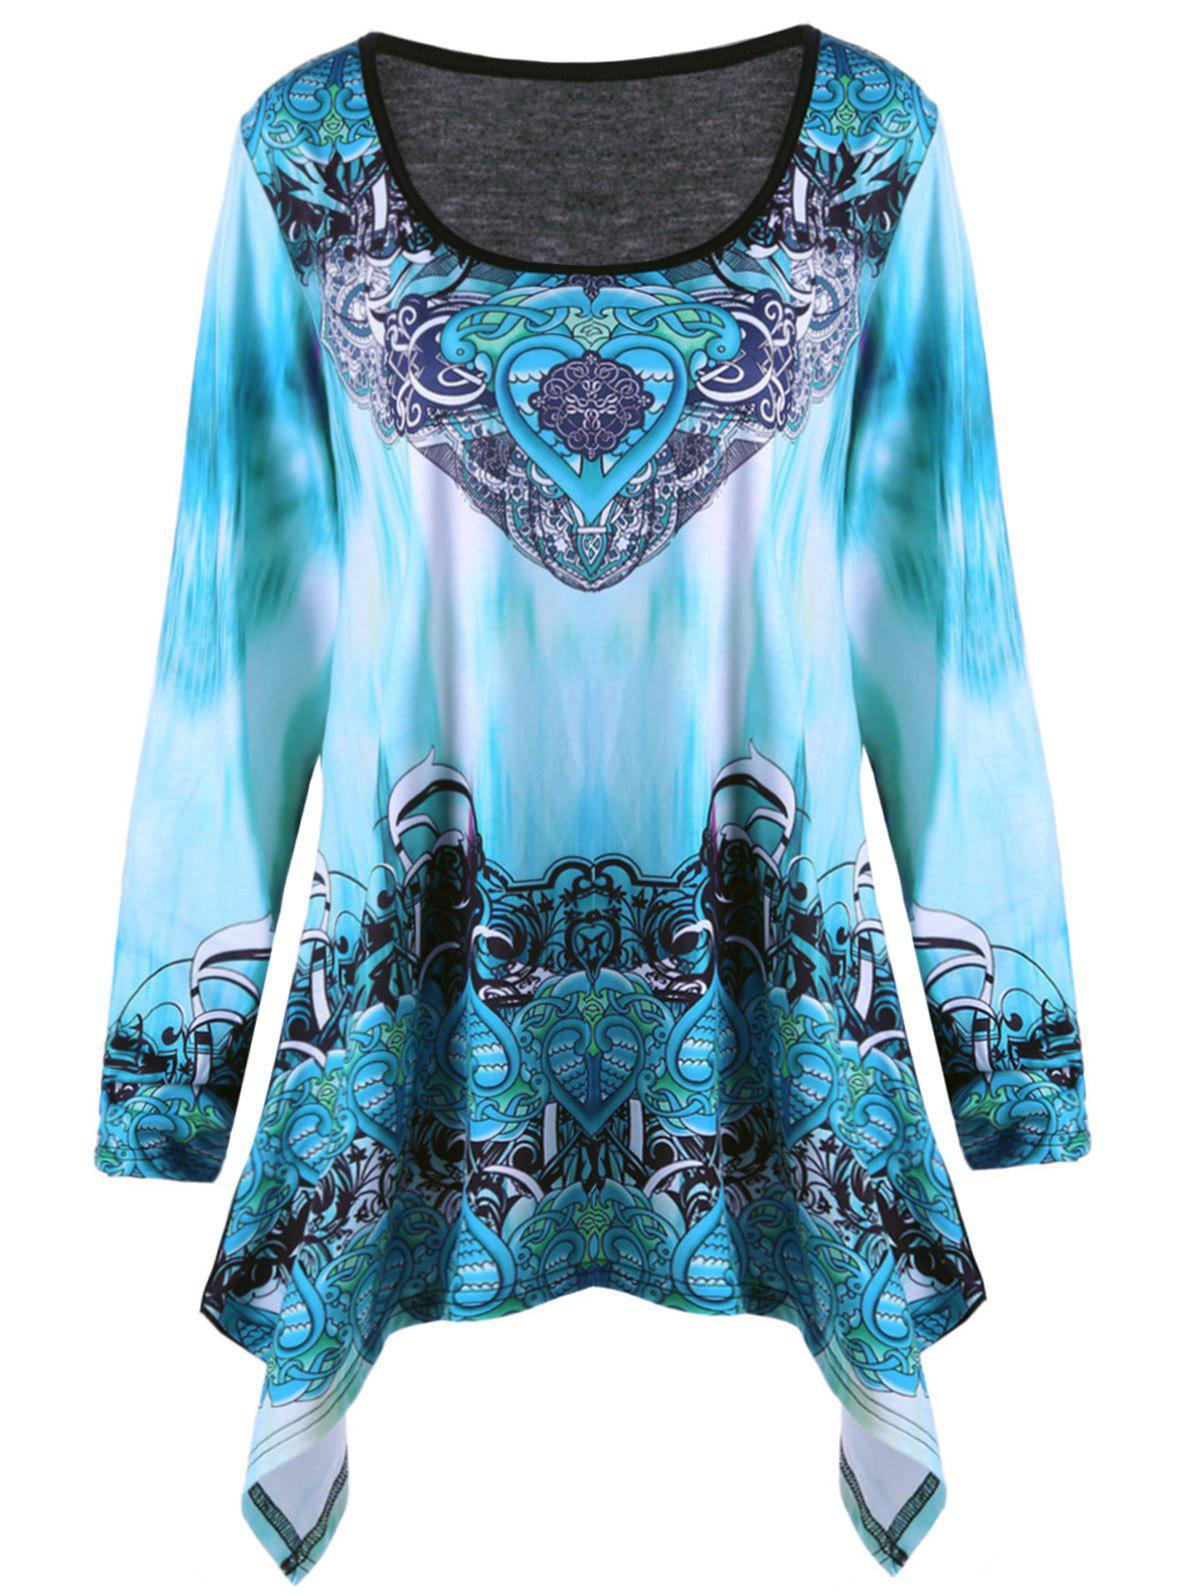 Plus Size Ombre Tribal Print Asymmetric T-shirtWOMEN<br><br>Size: 2XL; Color: COLORMIX; Material: Cotton,Polyester; Shirt Length: Long; Sleeve Length: Full; Collar: U Neck; Style: Fashion; Season: Fall; Pattern Type: Ombre,Tribal Print; Weight: 0.4200kg; Package Contents: 1 x T-shirt;